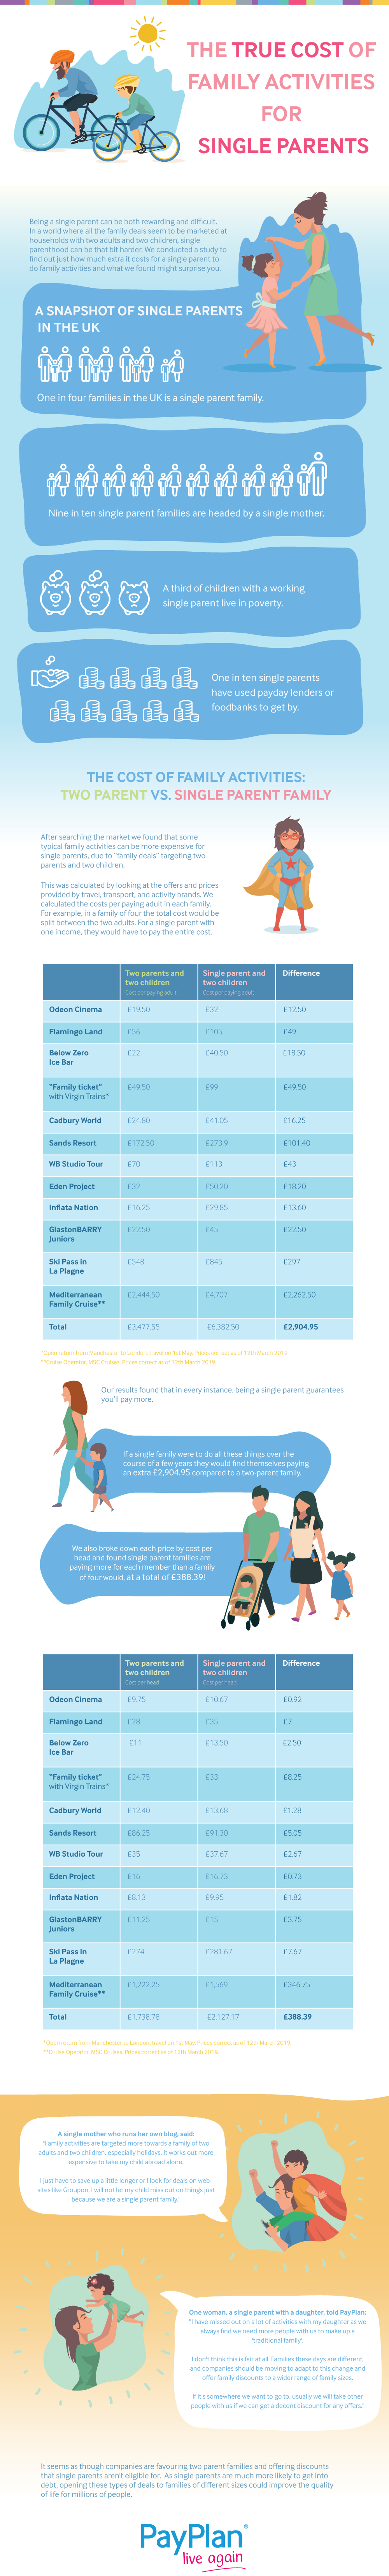 Infographic revealing how family activities cost more for single parent families